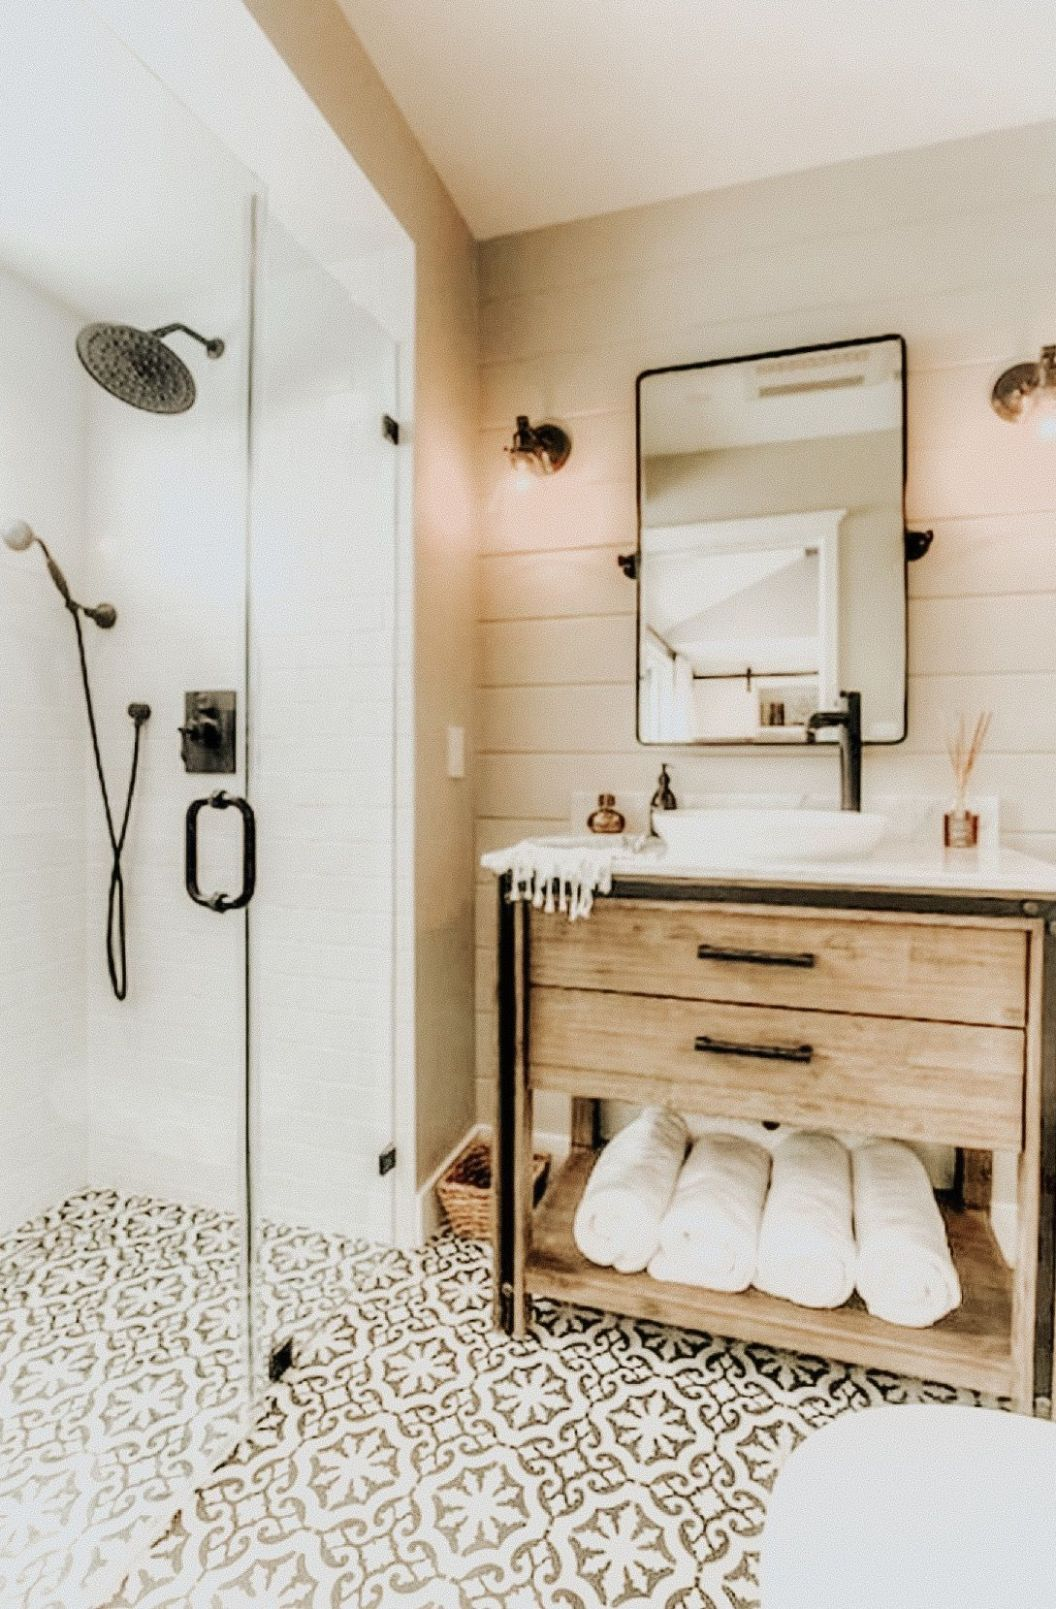 Pinterest alanamorg (With images) | Small bathroom ideas on a ..